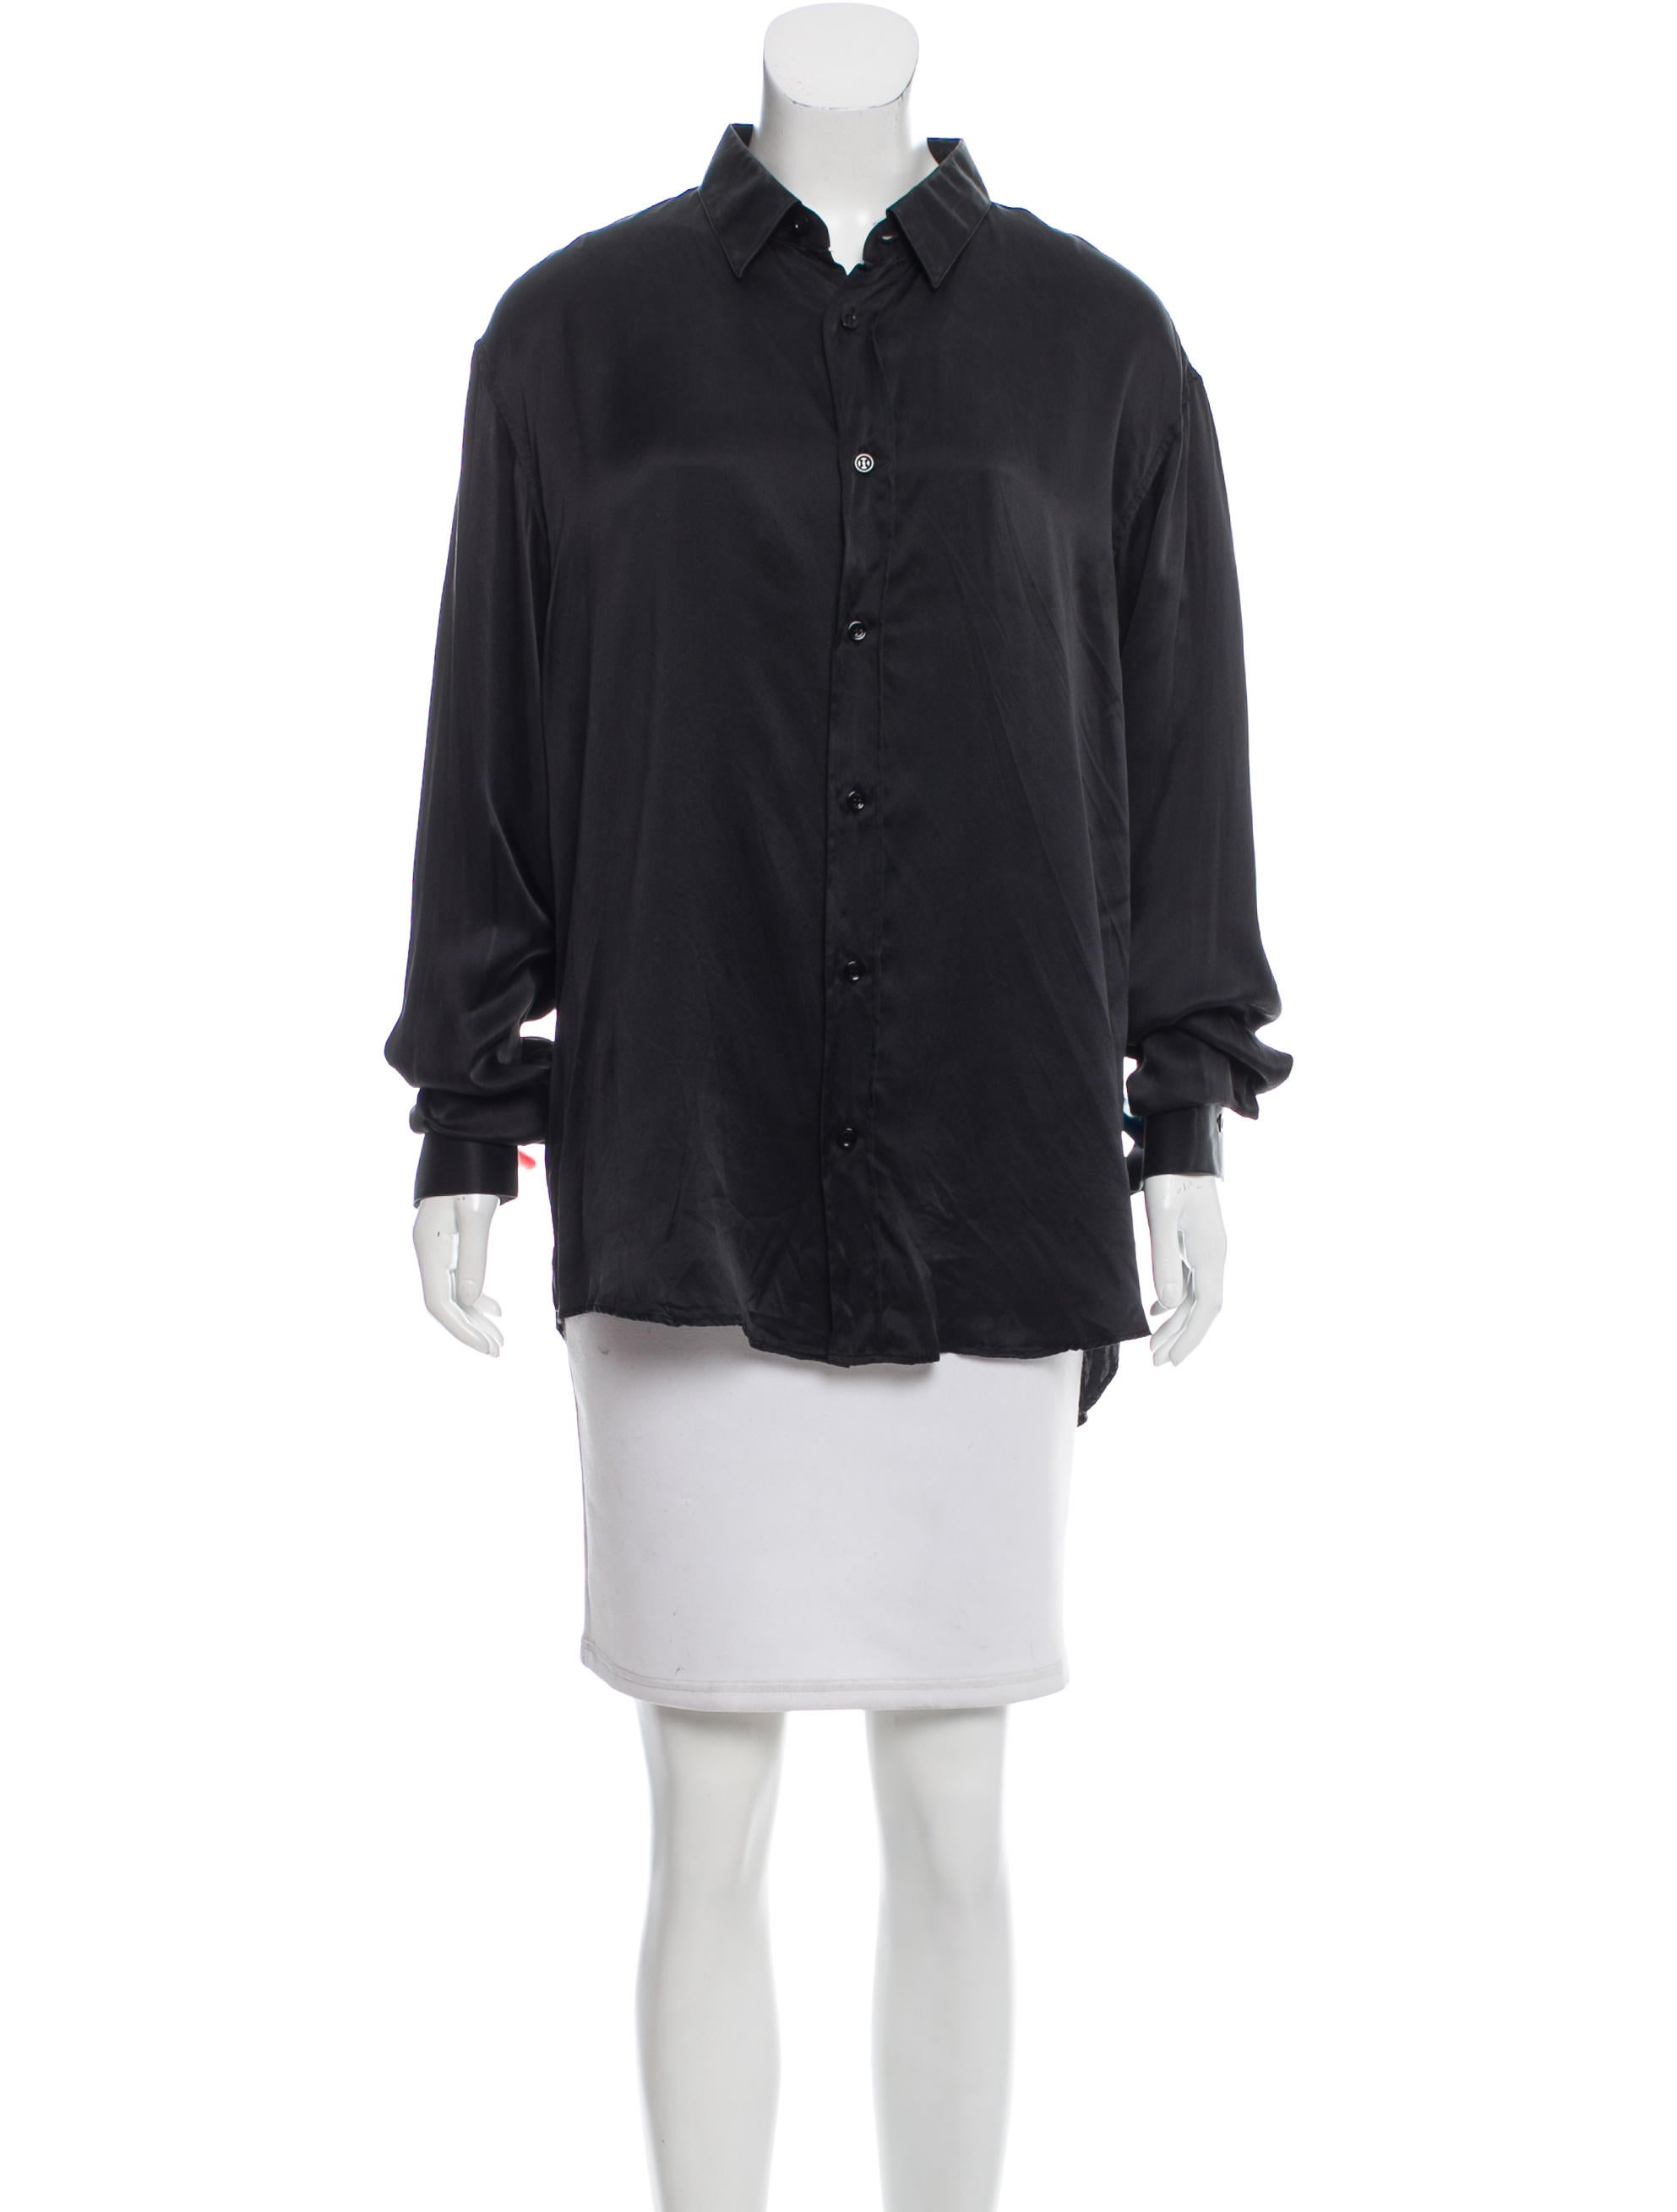 Christian dior silk button up top clothing chr56922 for Christian dior button up shirt